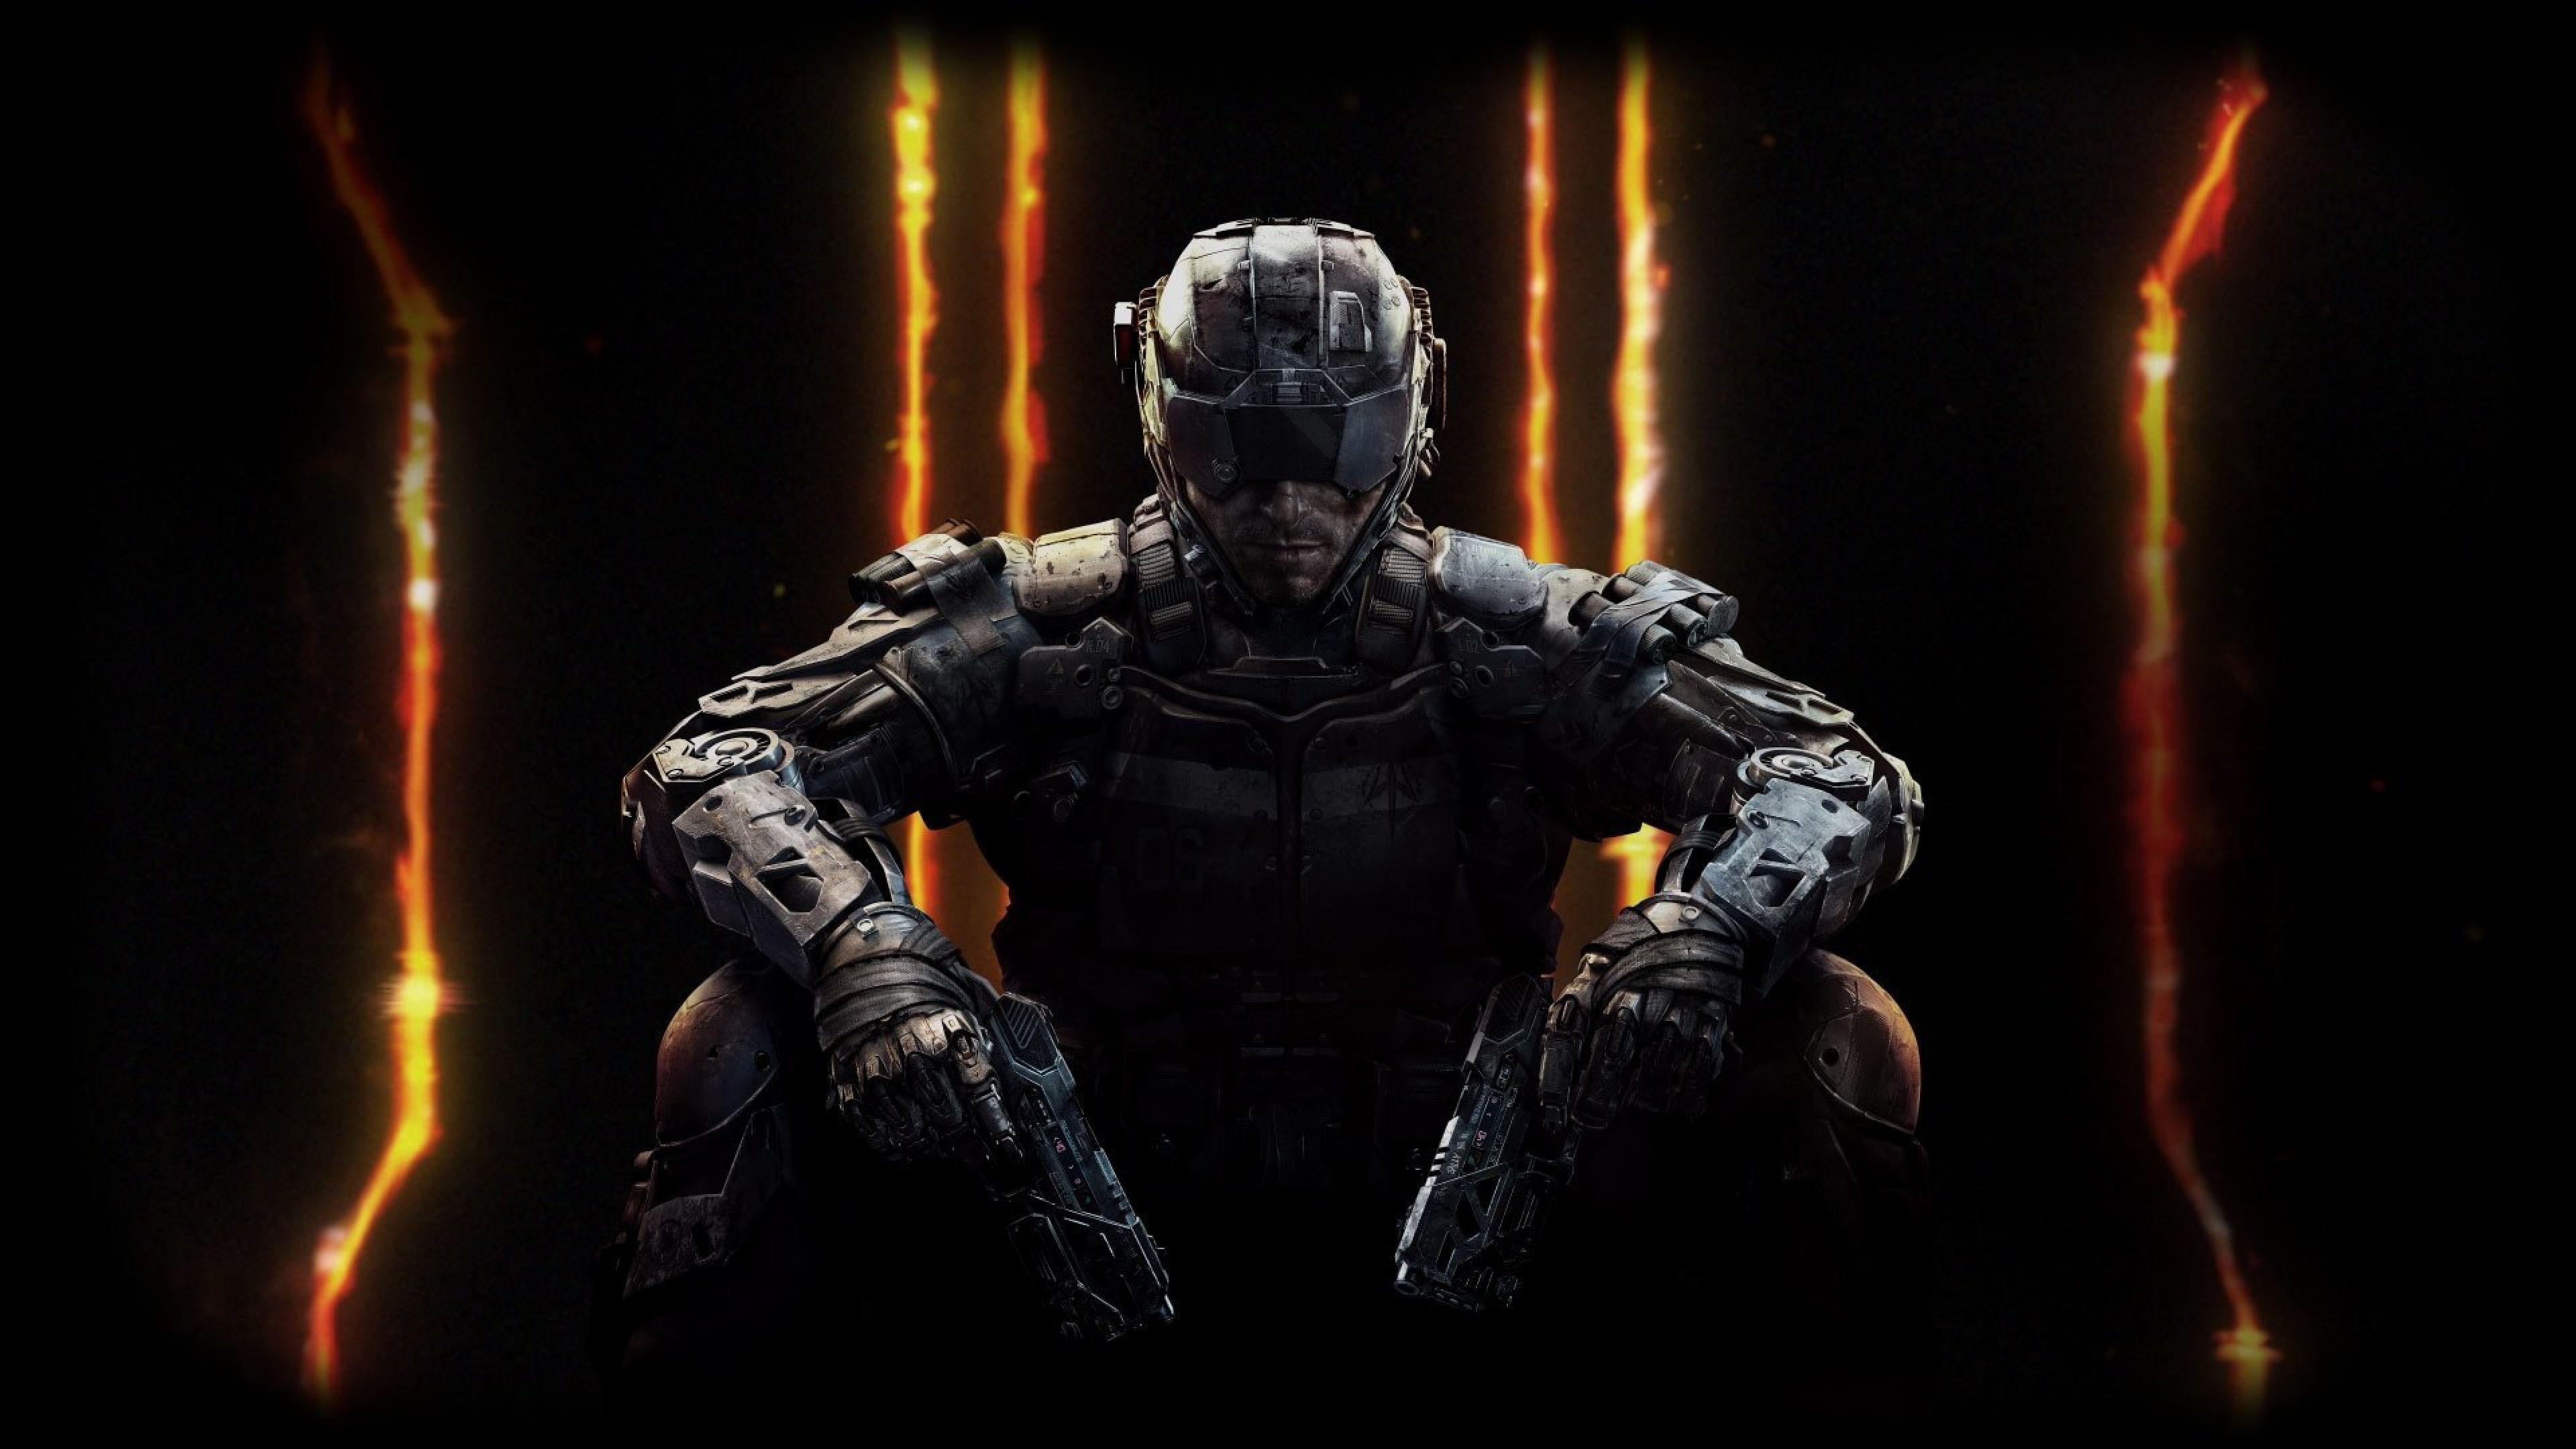 Black Ops 4 Wallpapers - Top Free Black